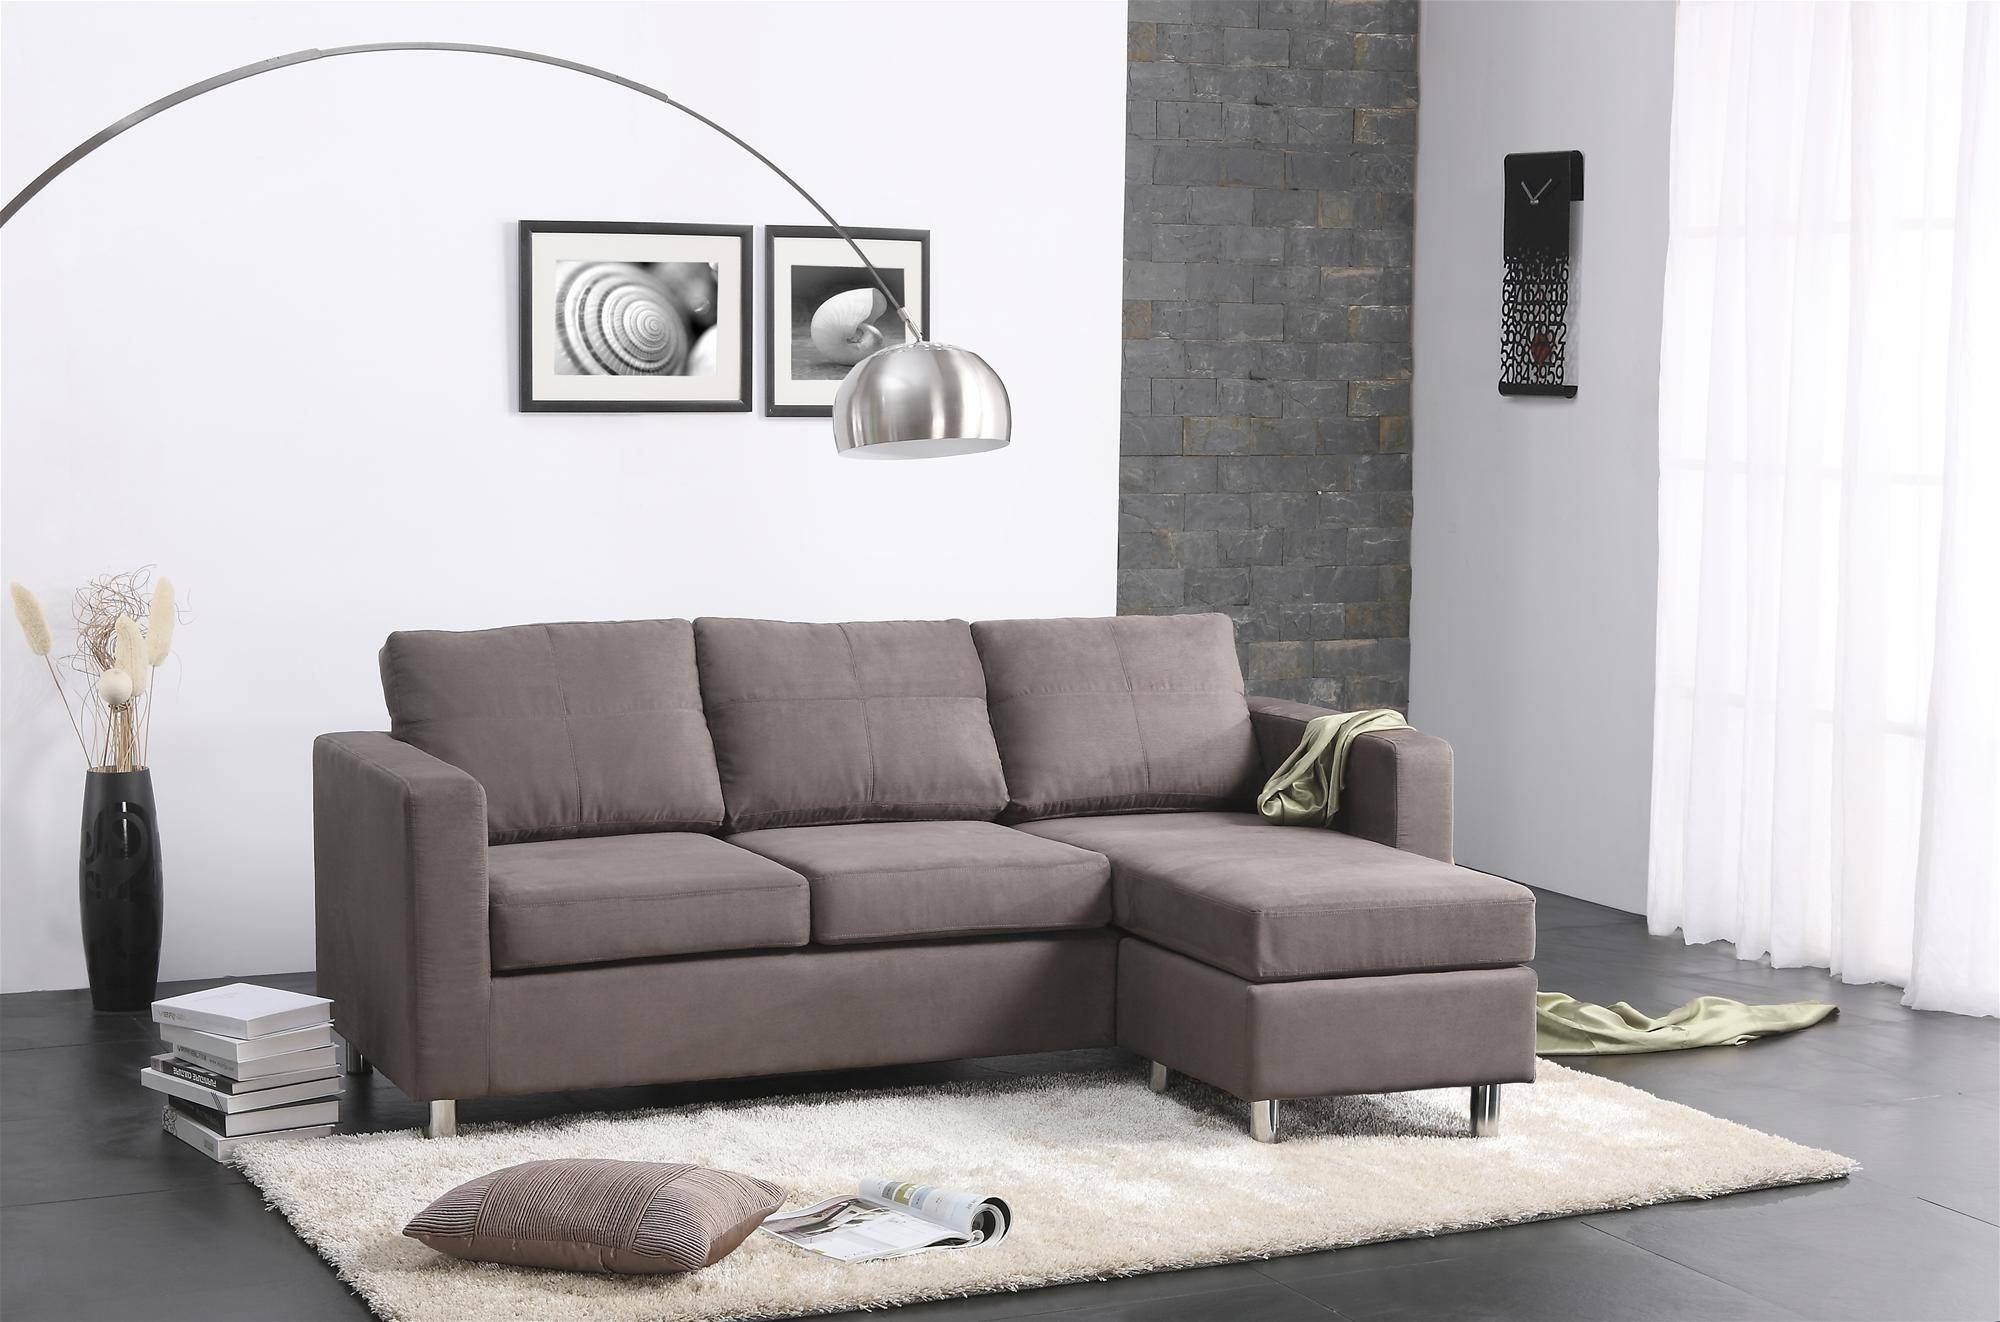 Popular High Quality Sectional Sofas 85 With Additional Abbyson pertaining to Abbyson Living Charlotte Beige Sectional Sofa And Ottoman (Image 23 of 30)